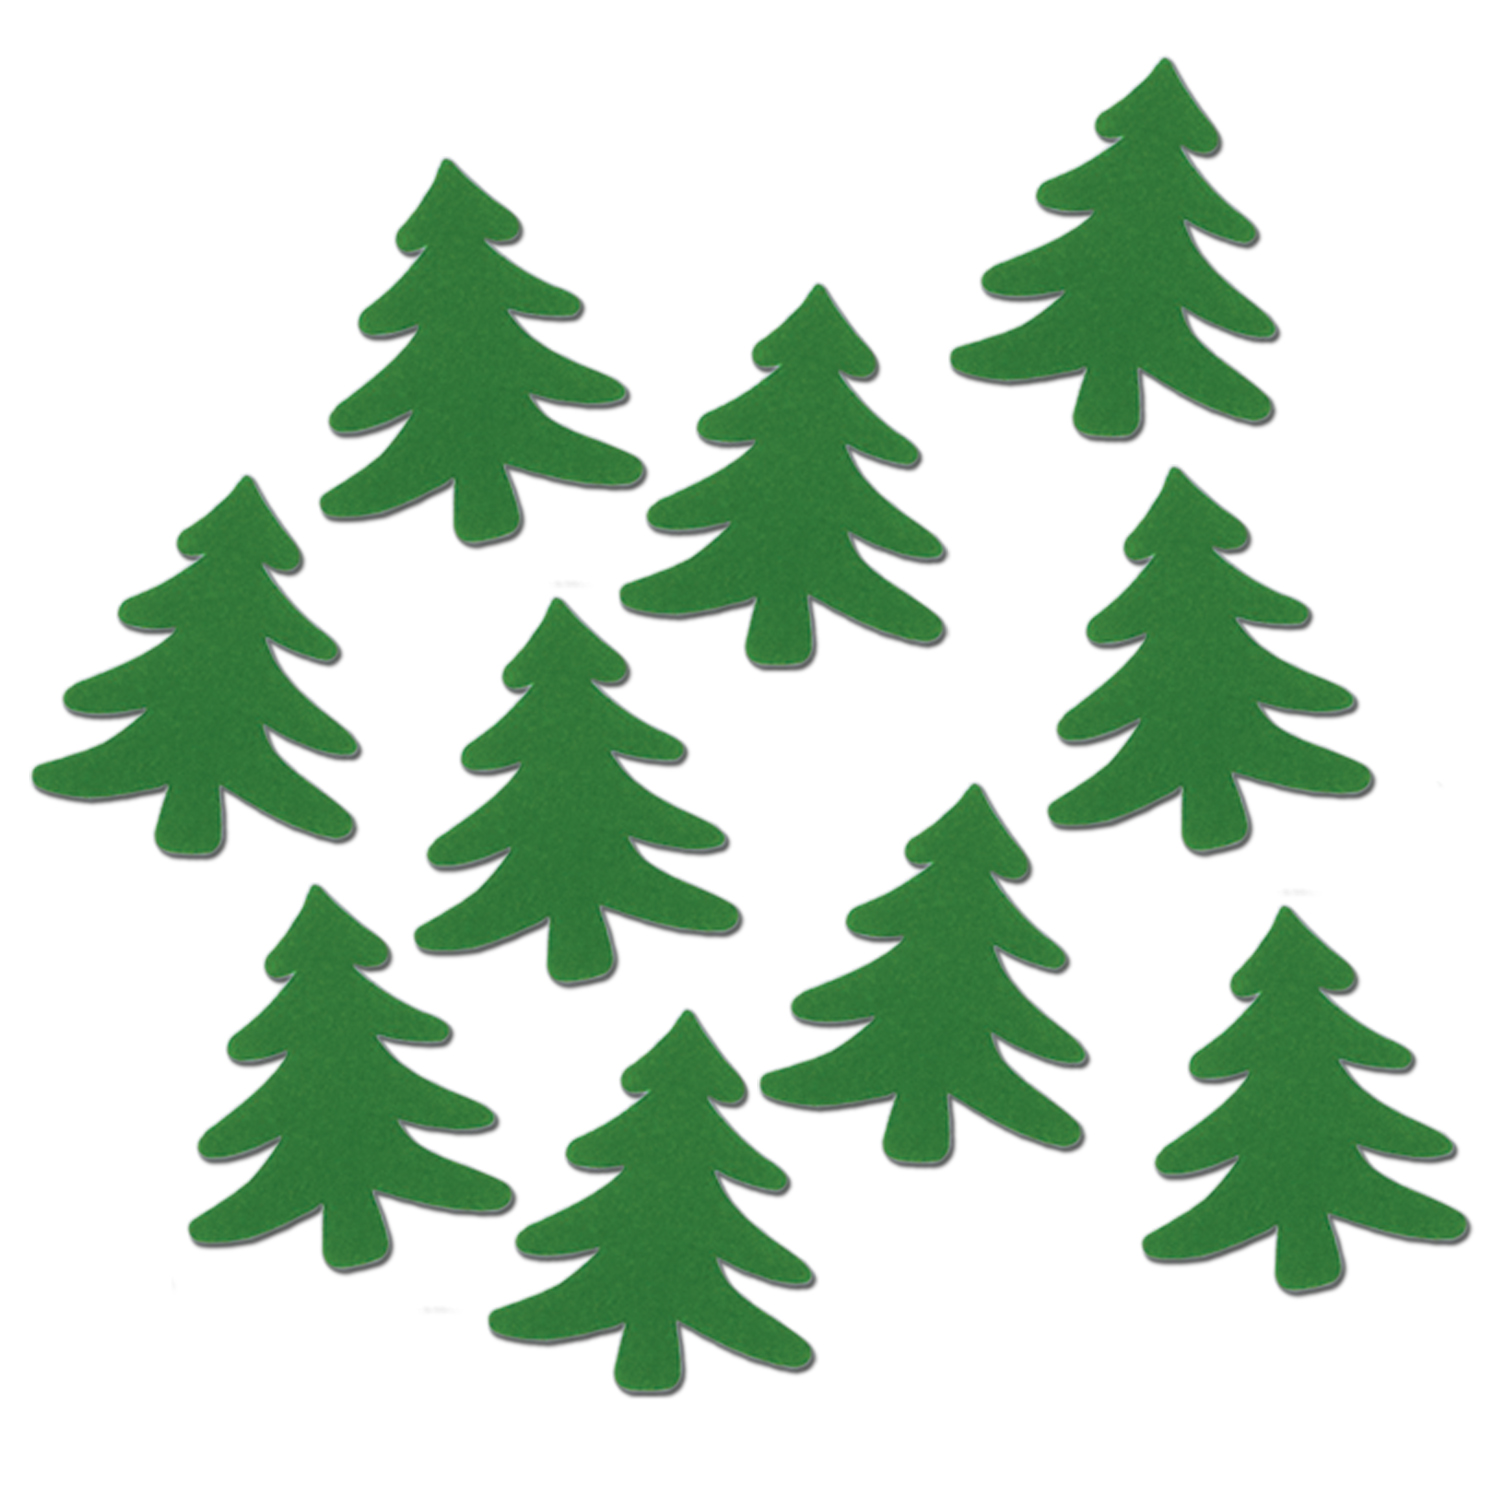 55 images of Christmas Tree Silhouette . You can use these free ...